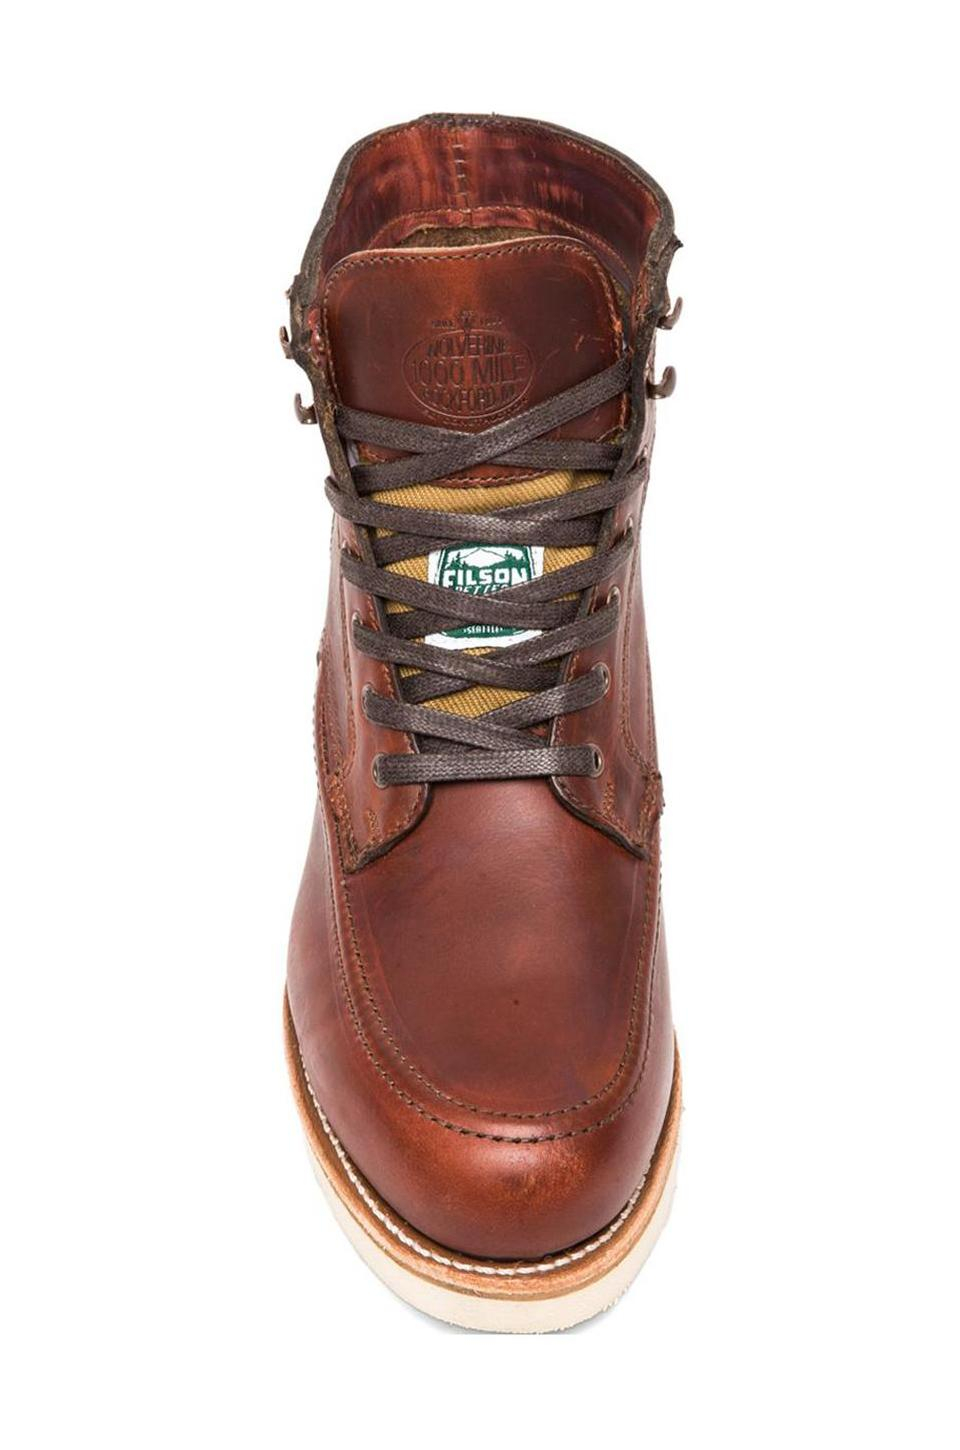 a27535e1618 Lyst - Wolverine 1000 Mile Emerson Boot in Brown for Men